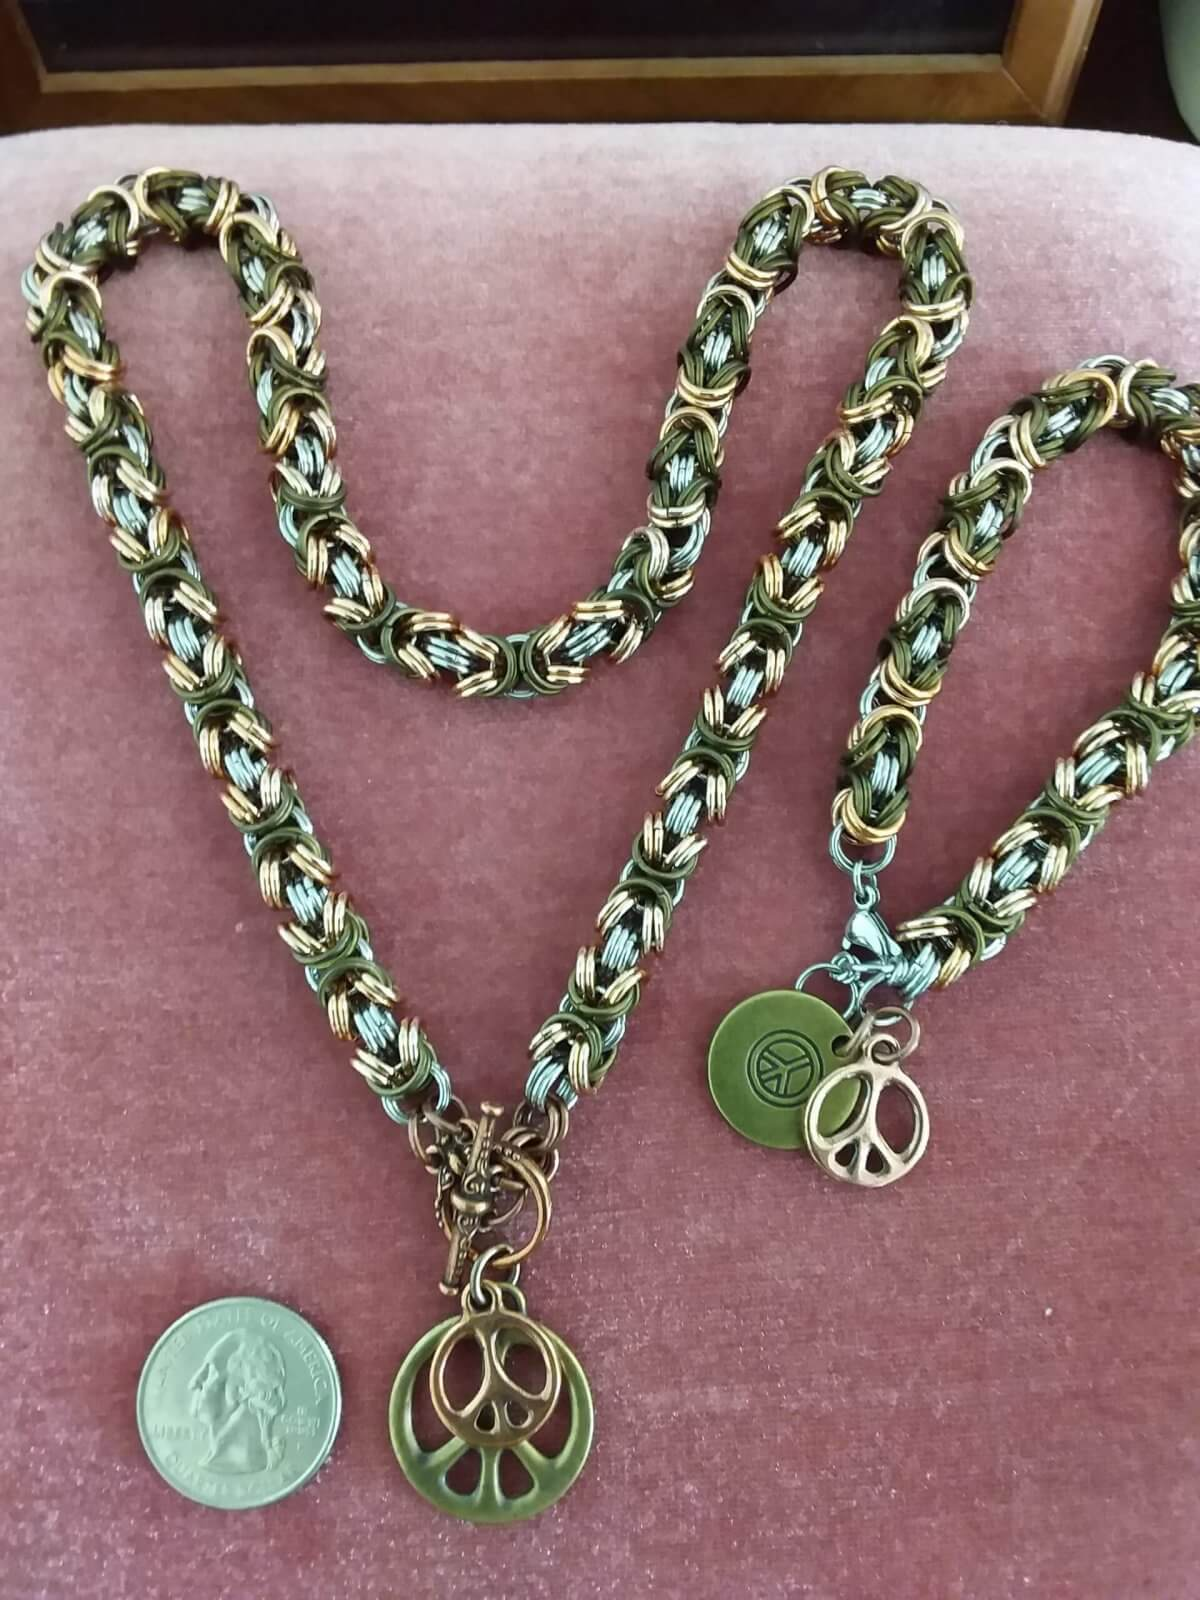 https://lorirae.com/wp-content/uploads/2020/06/Chainmaille-Peace-2-scaled-e1591306602678.jpg